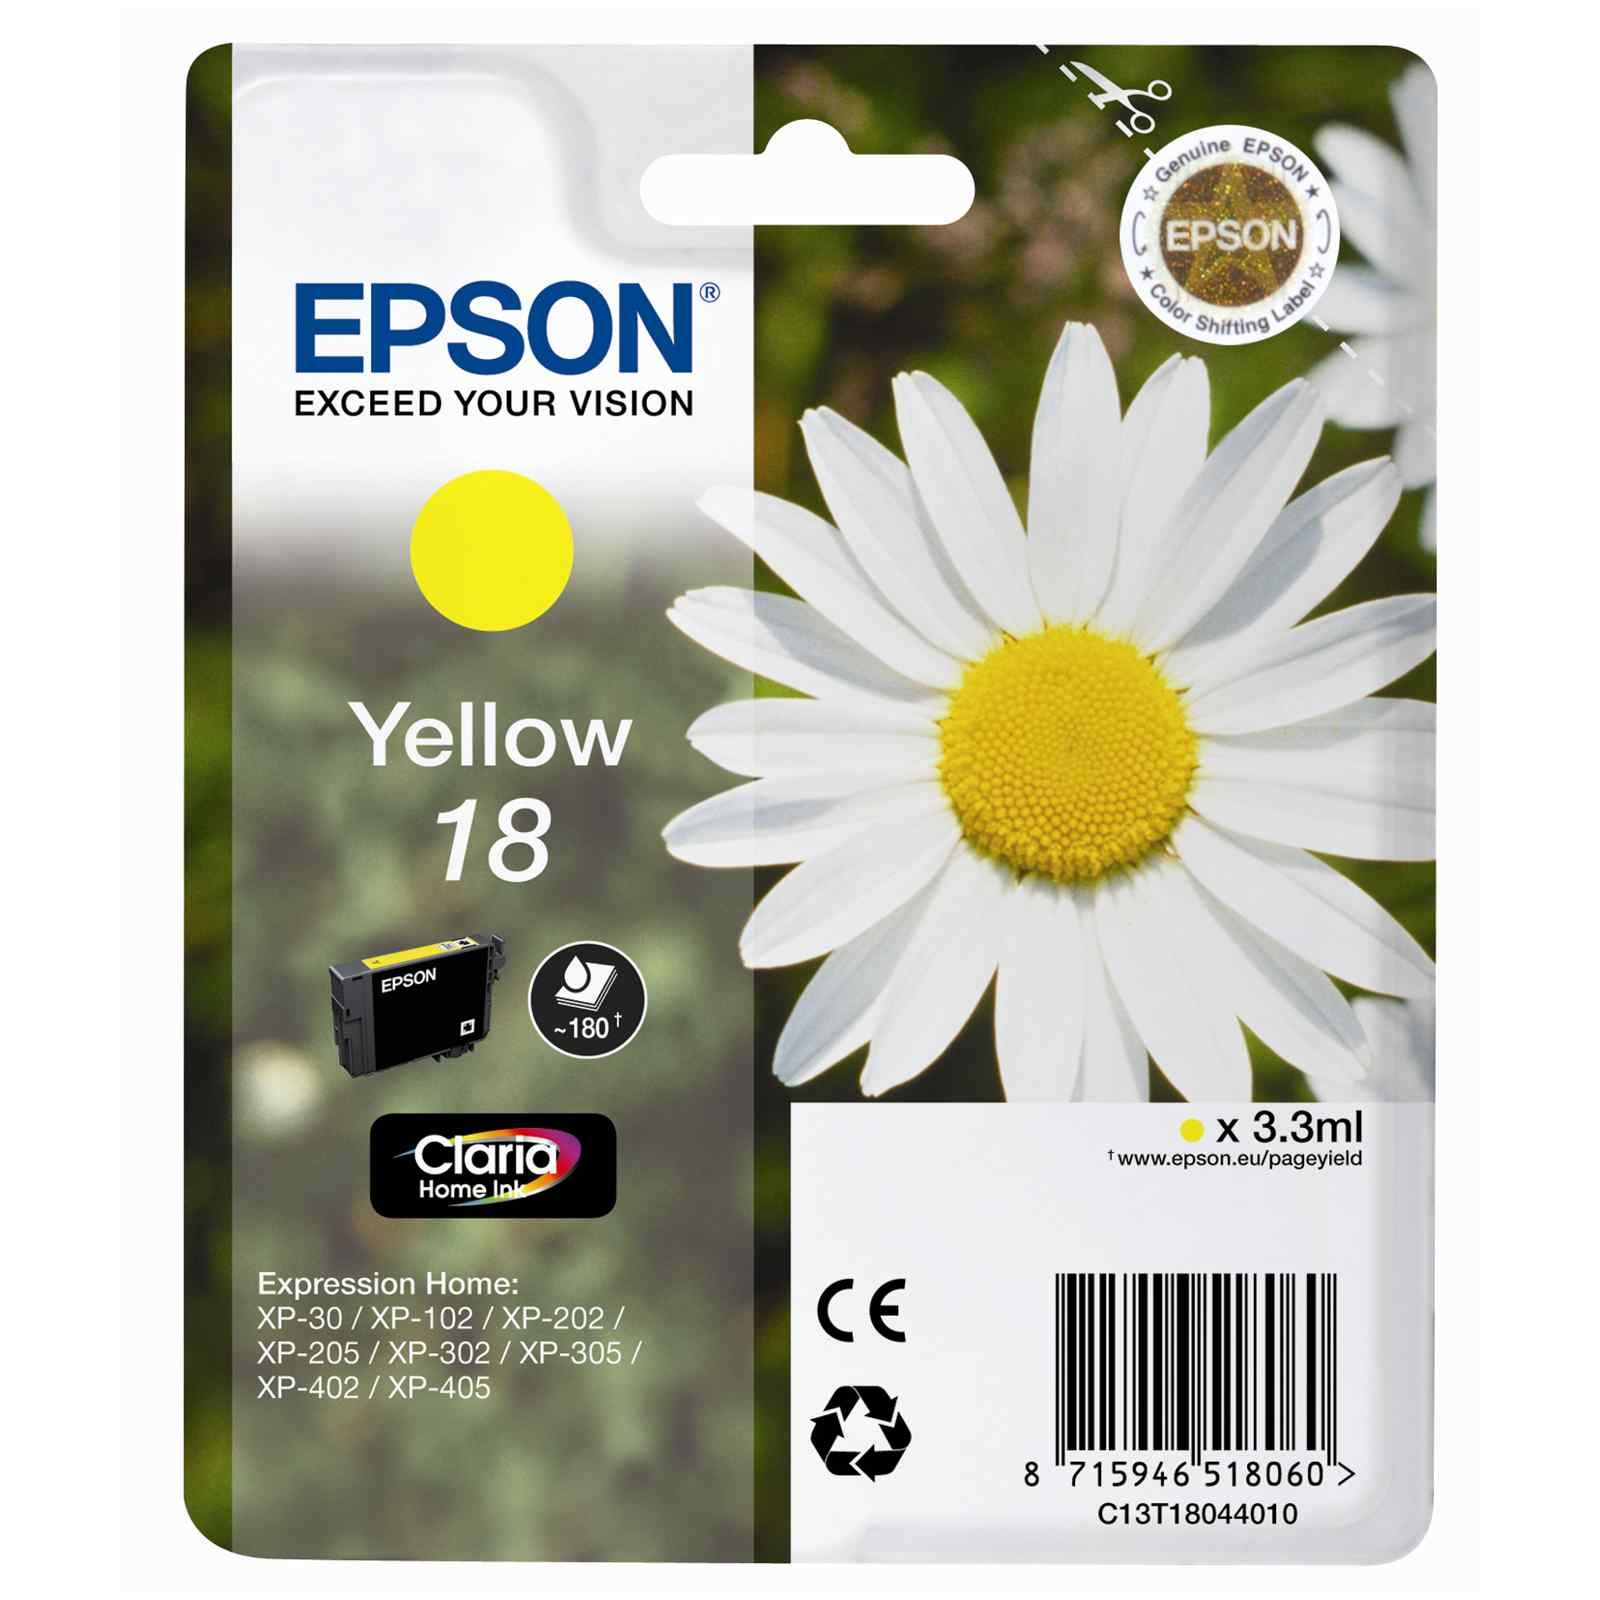 Epson Original 18 T1804 Daisy Ink Cartridge 3.3ml Yellow